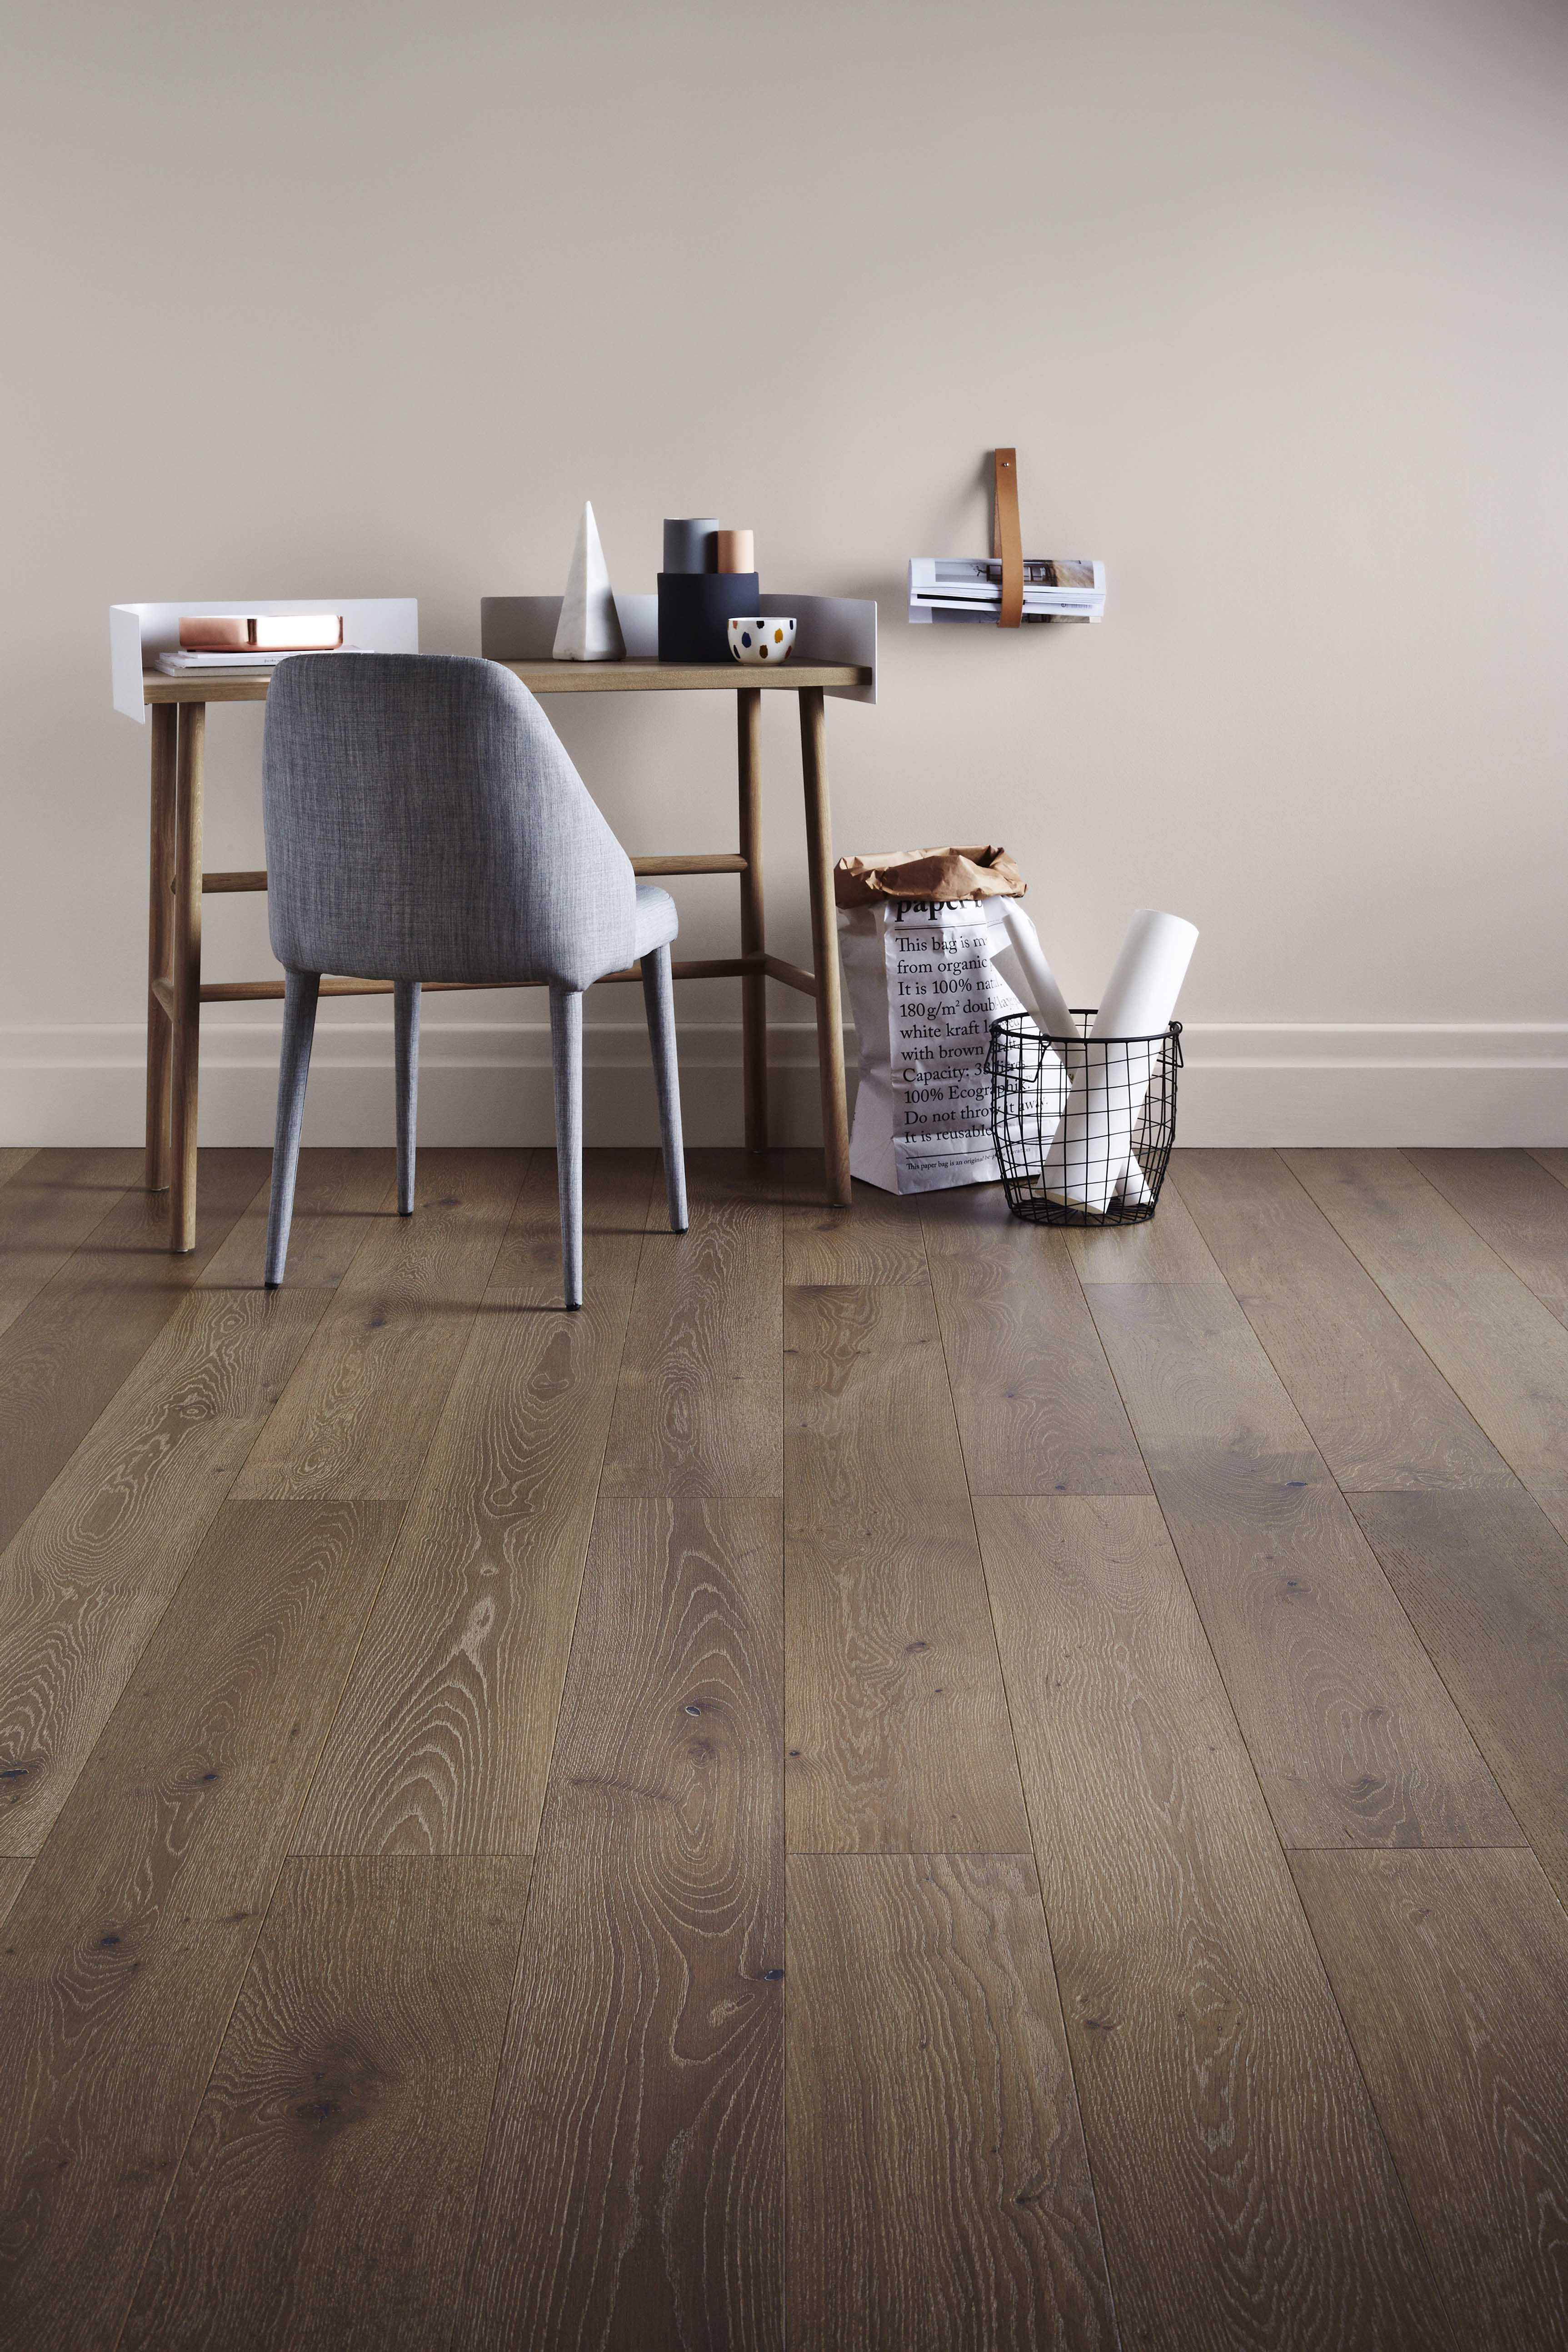 Godfrey Hirst Timber Flooring Get The Look With Timber Naturals Villa In Nougat Godfreyhirstflooring Godfreyhirst Flooring Timber Flooring Floor Design